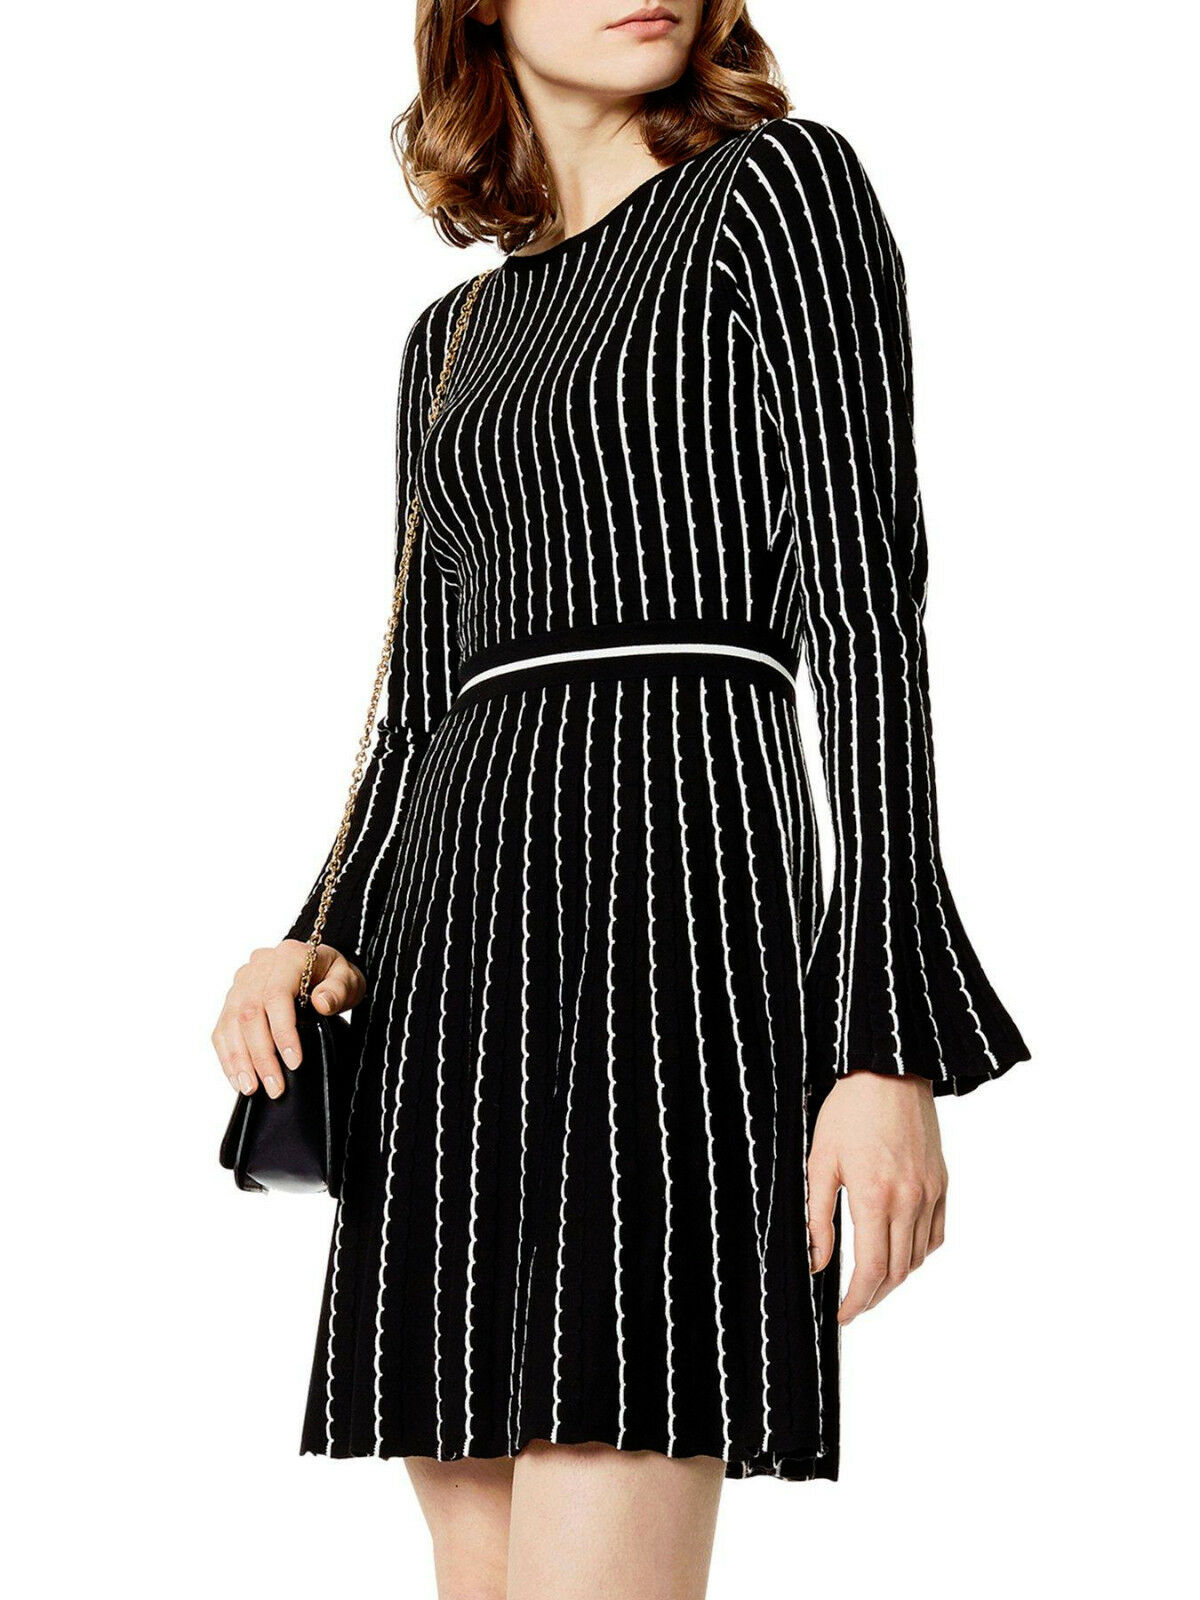 New KAREN MILLEN Pin Stripe Stripe Stripe BNWT  Evening Bodycon FIt & Flare Knit Dress | Innovation